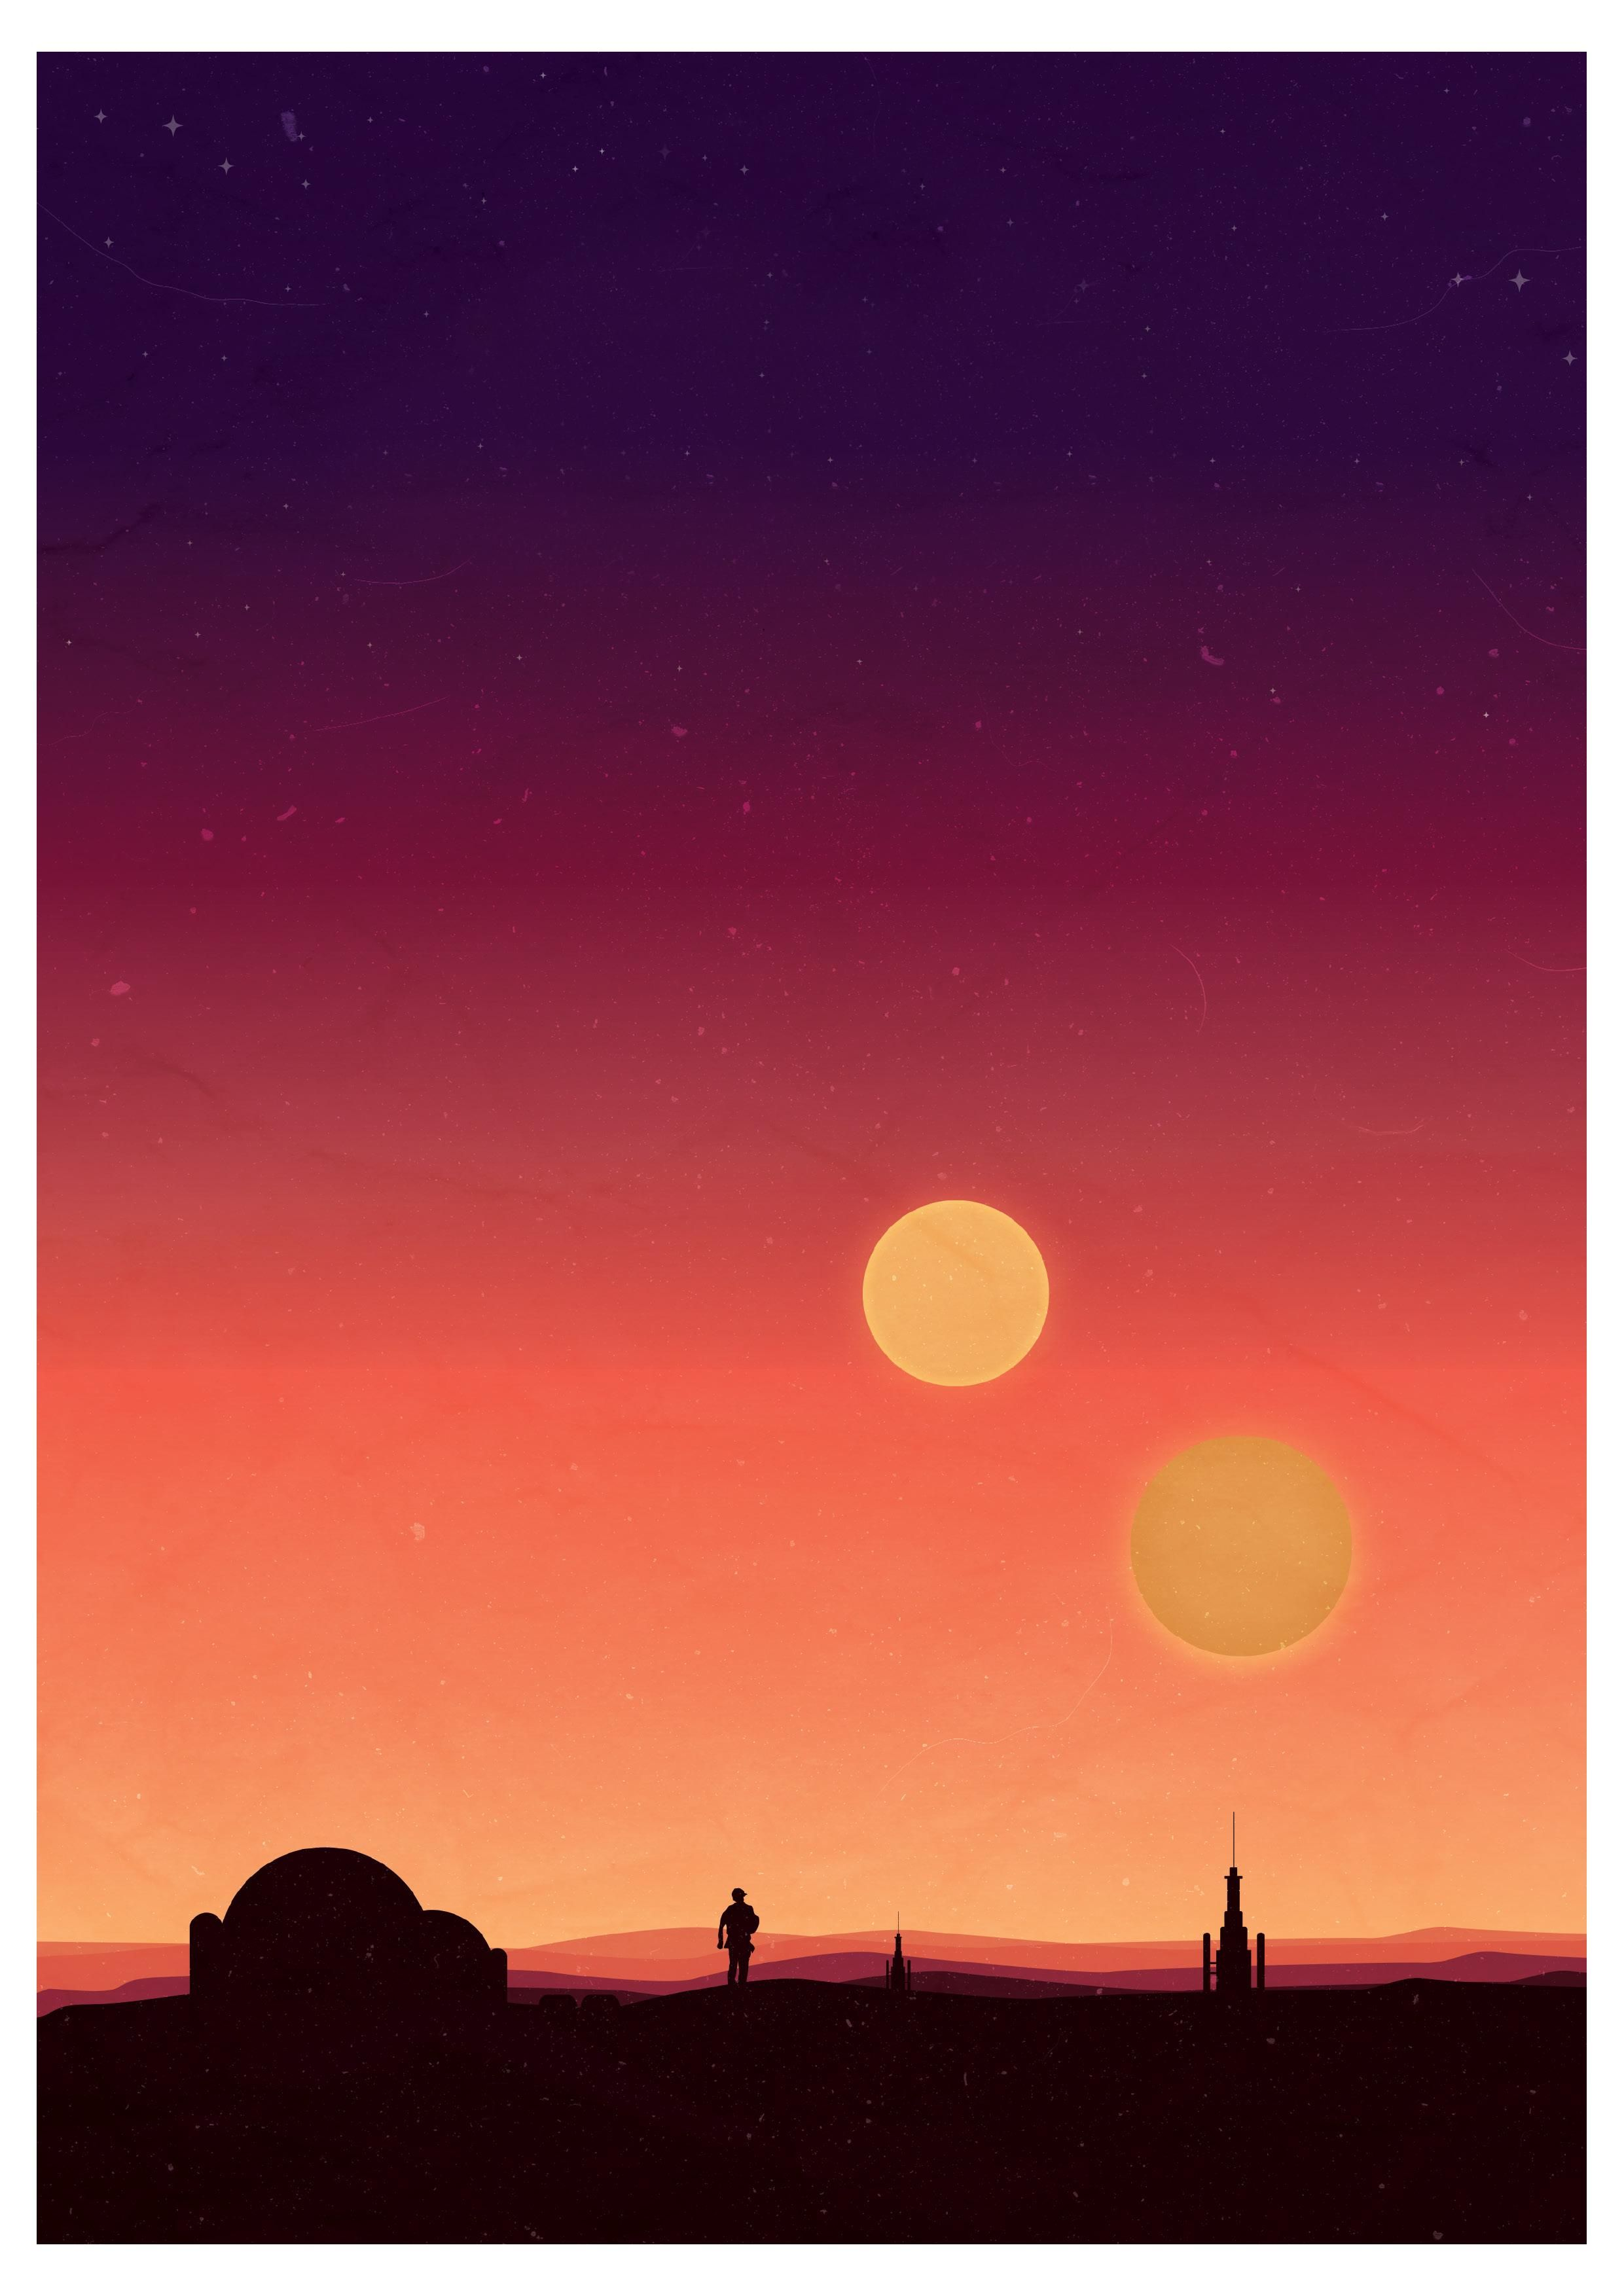 Star Wars Binary Sunset Poster I Made This One The Weekend Was